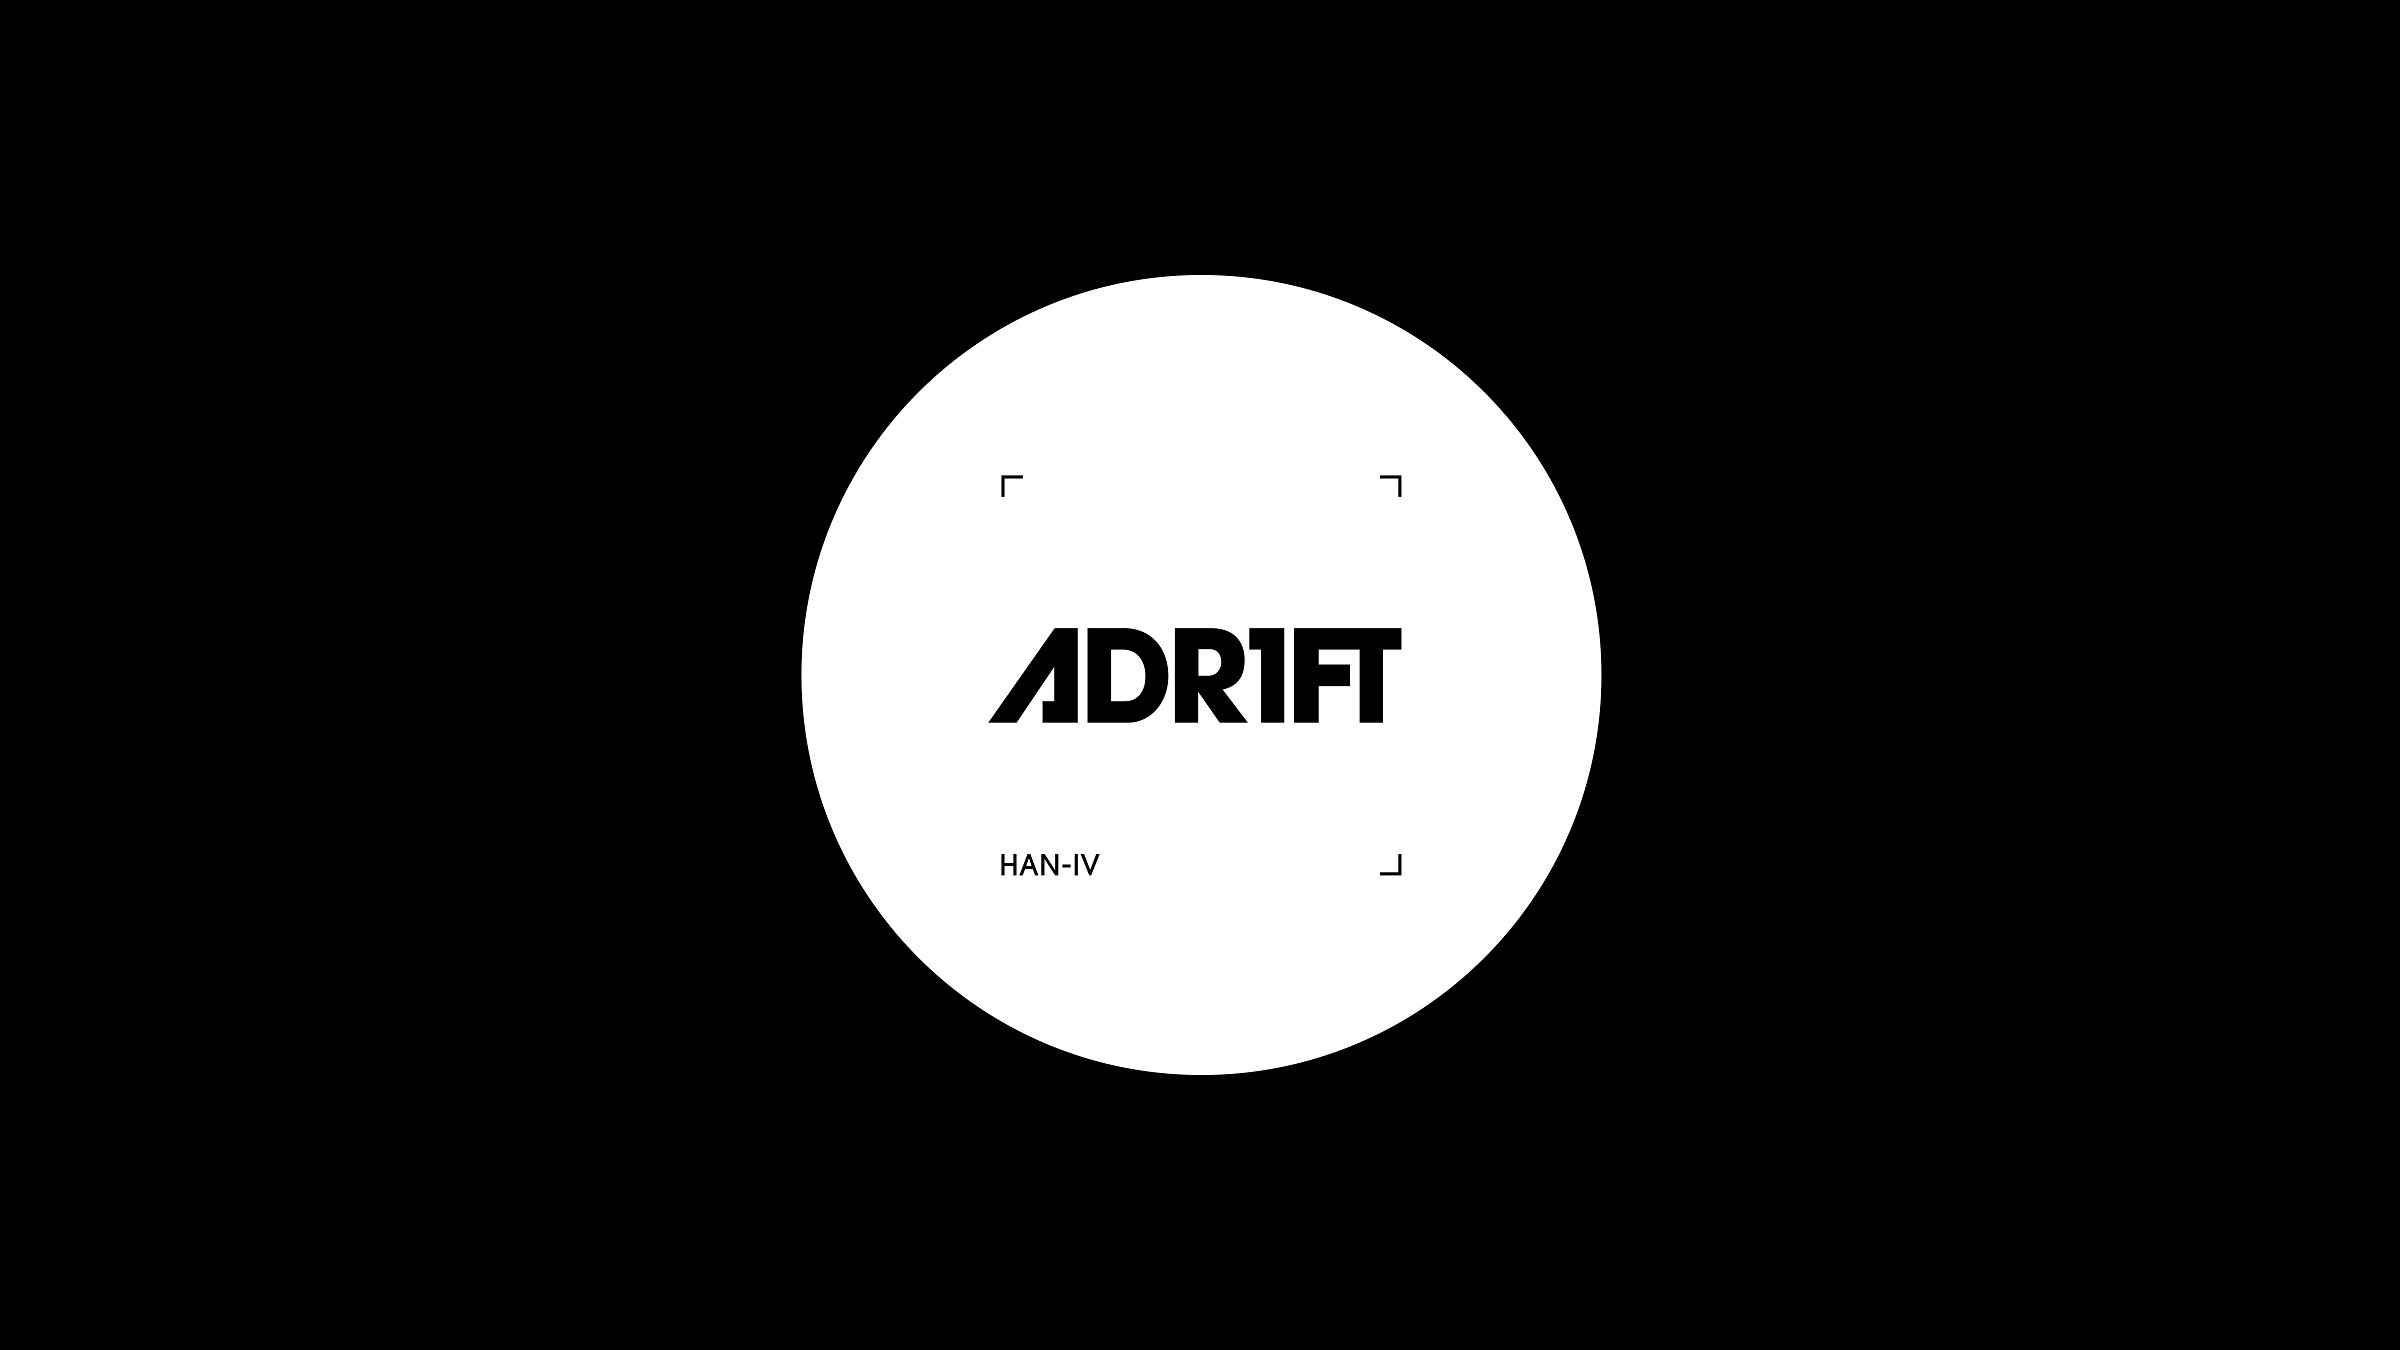 ADR1FT logo